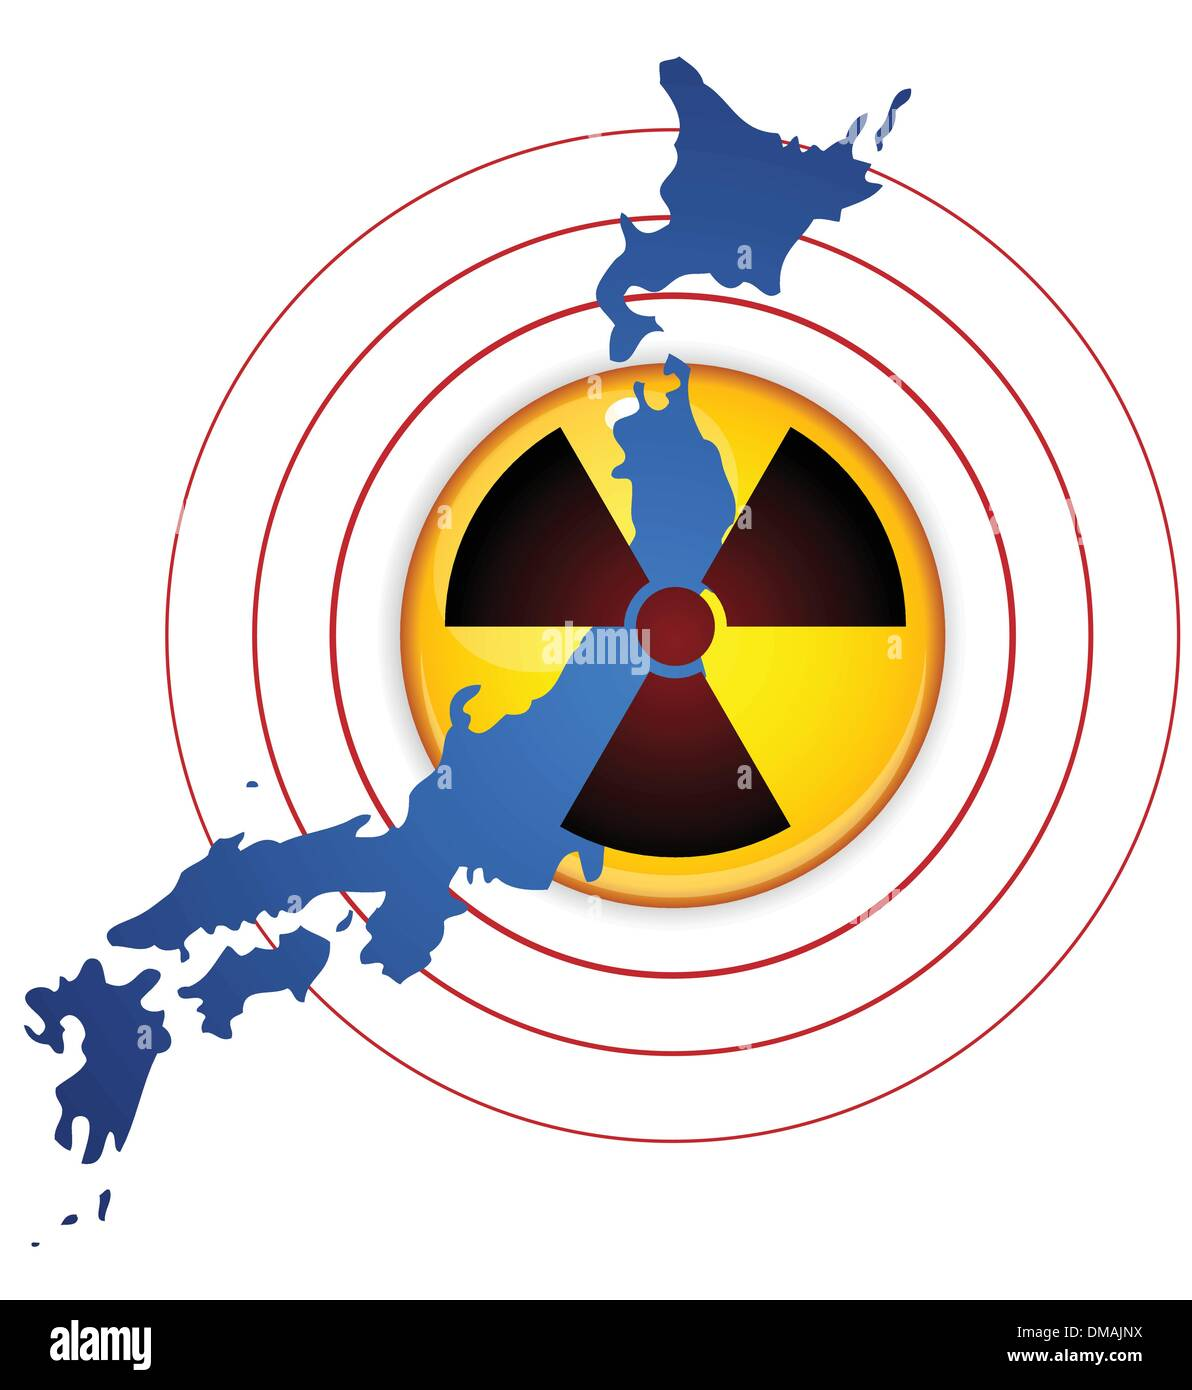 Japan Earthquake, Tsunami and Nuclear Disaster 2011 - Stock Image